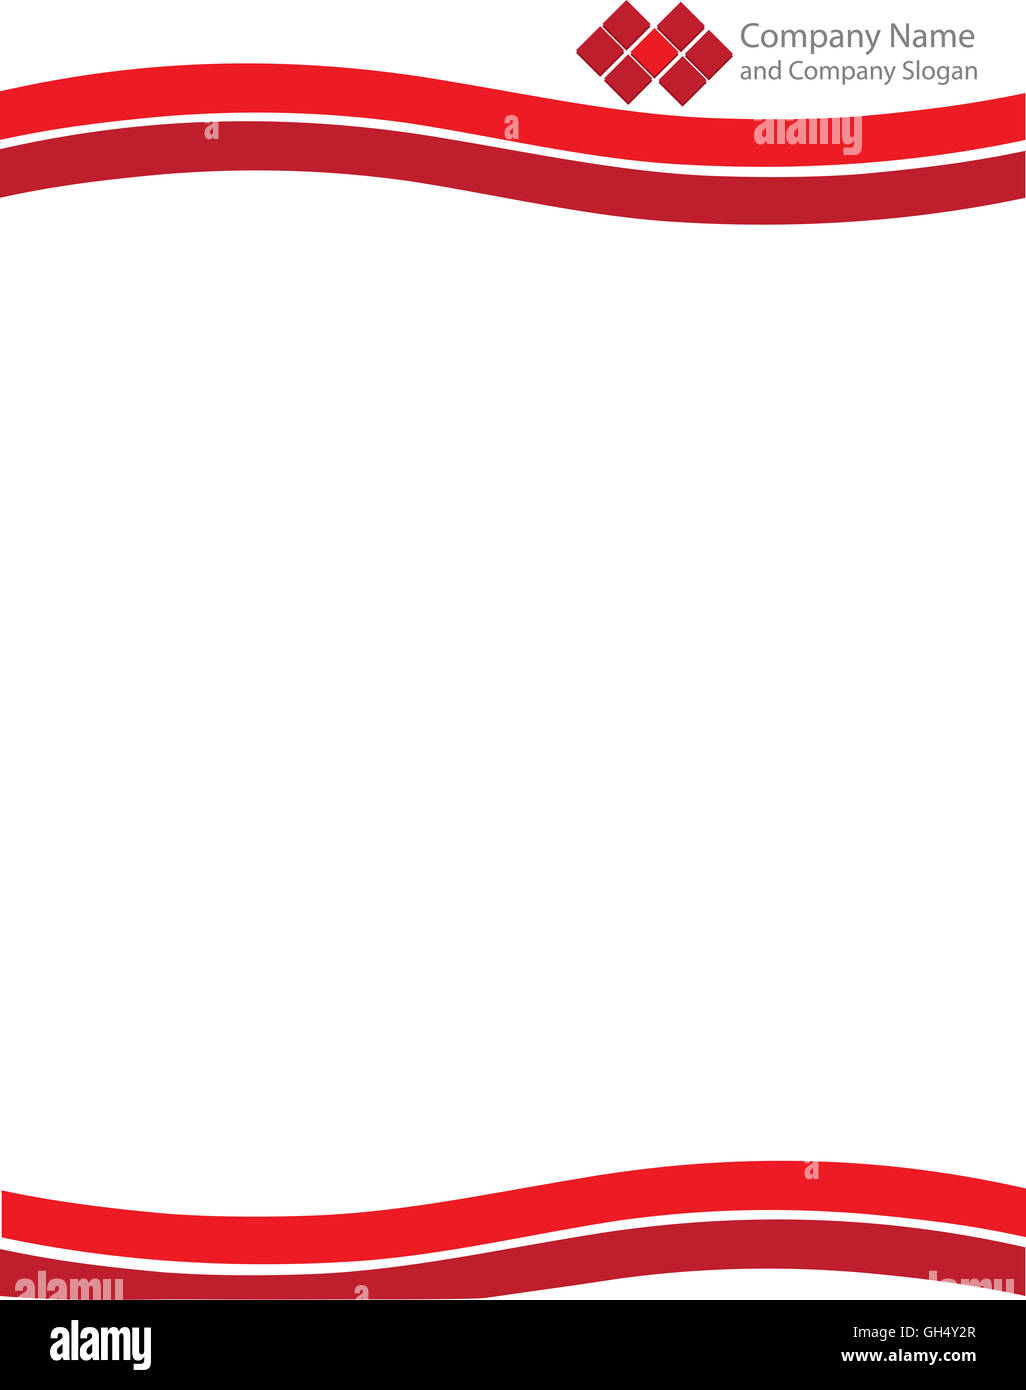 Red Wave Letterhead Template with Logo - Stock Image